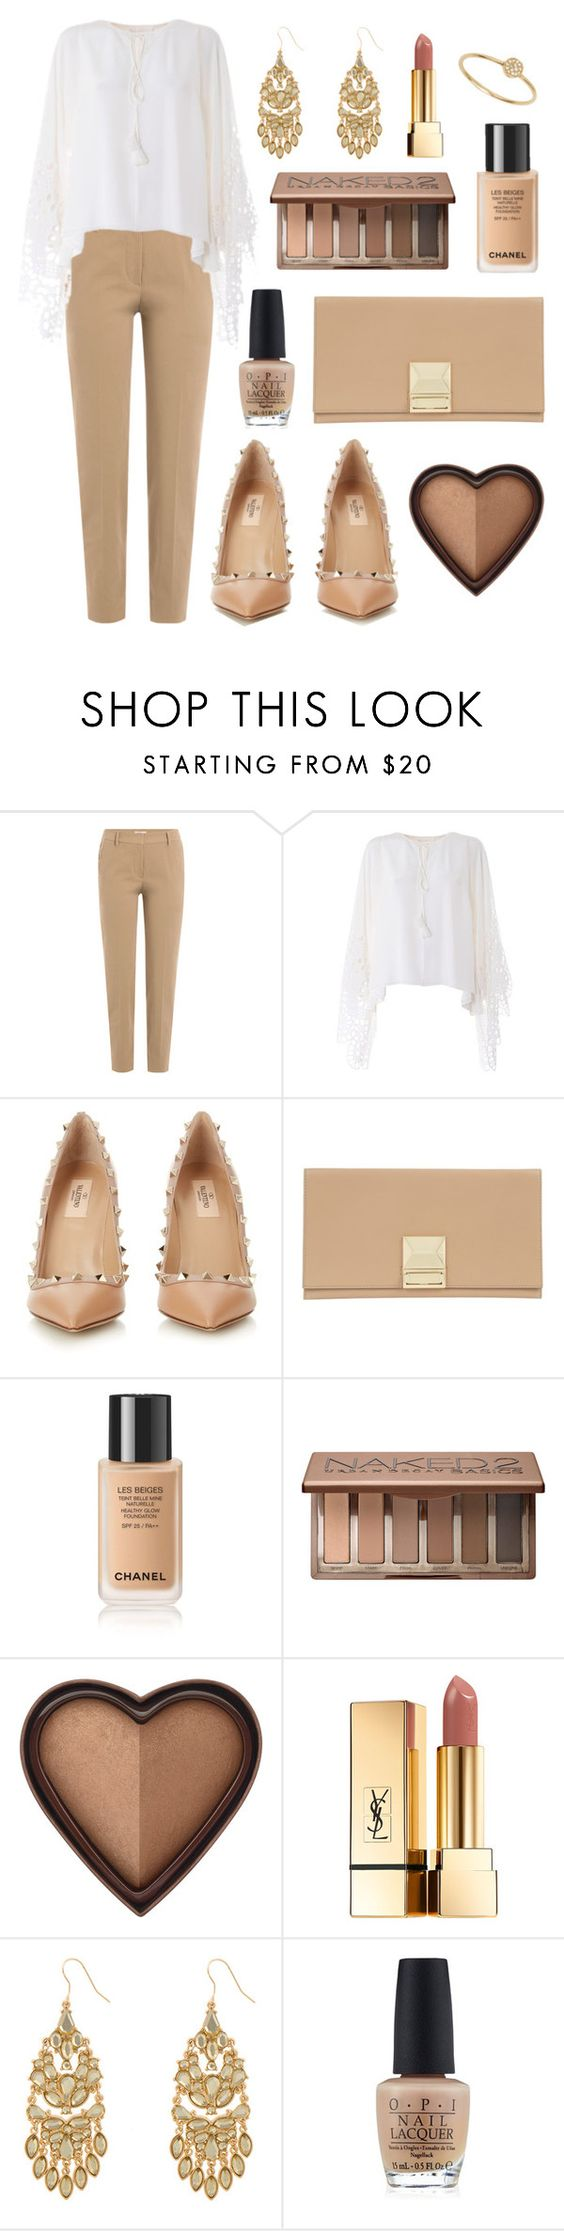 """Lacey Nudes"" by tasha-m-e ❤ liked on Polyvore featuring Brunello Cucinelli, Chloé, Valentino, Jaeger, Urban Decay, Yves Saint Laurent, Eloquii, OPI and Anine Bing"